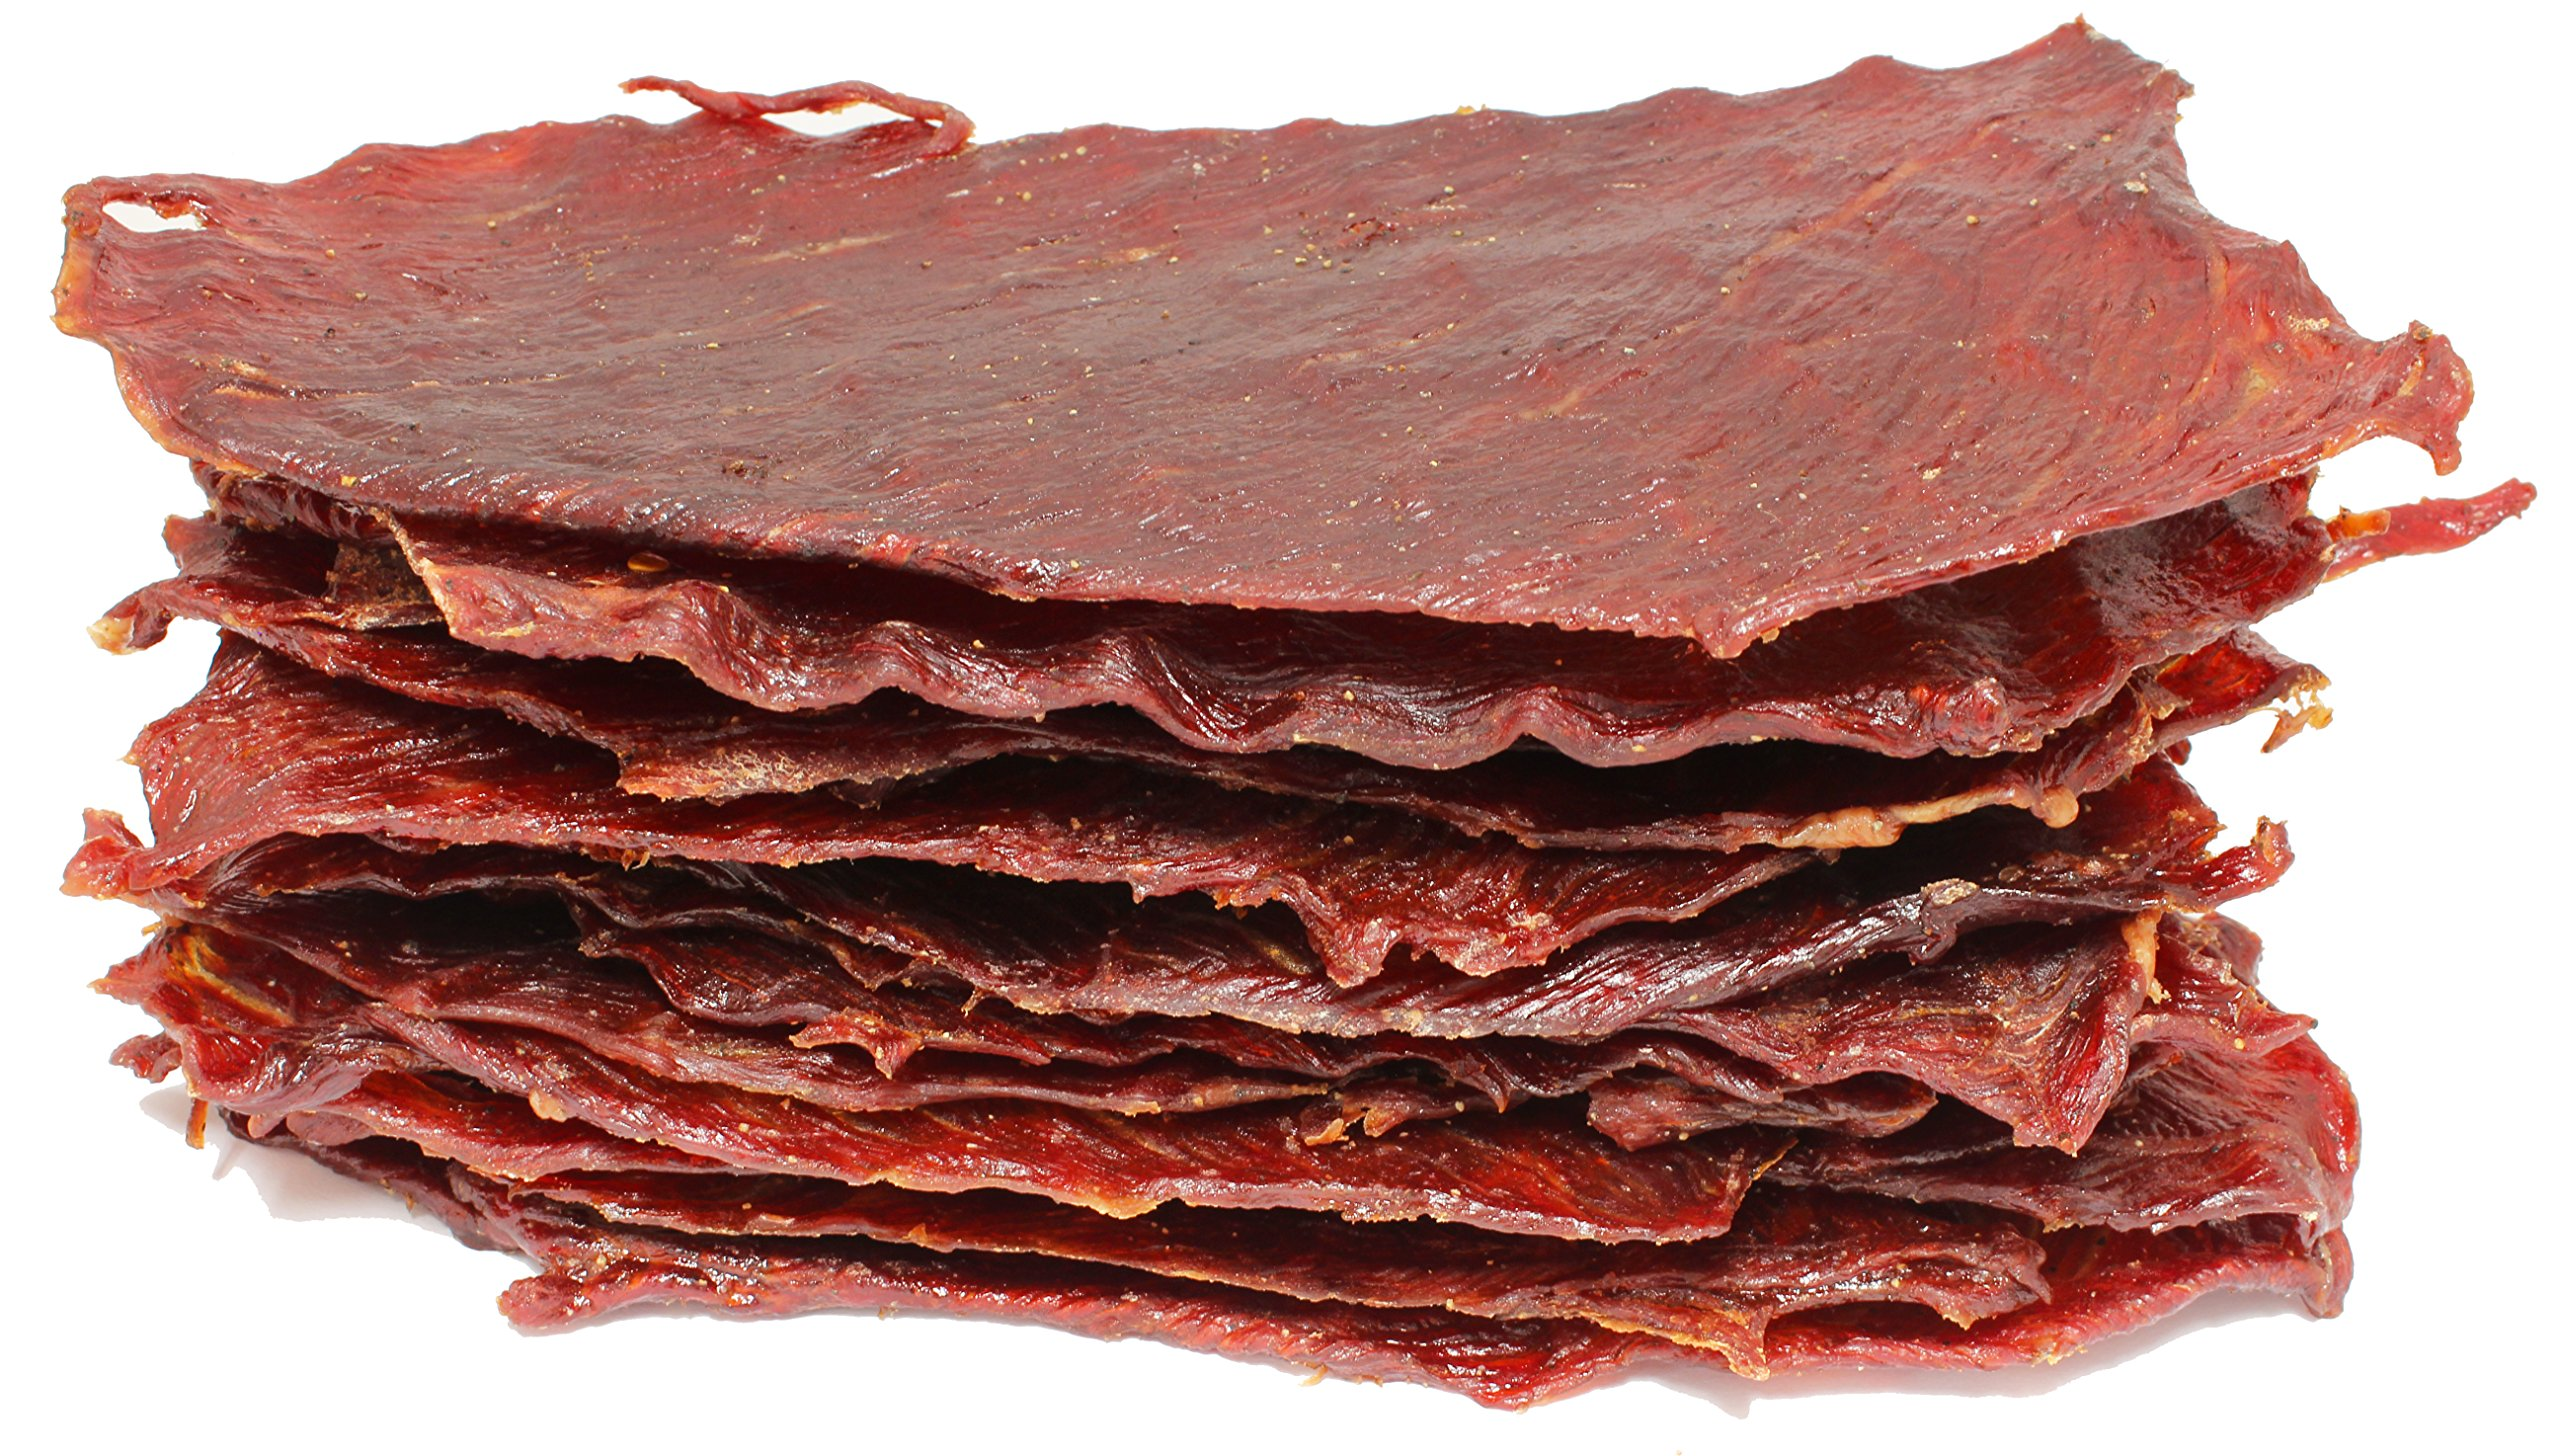 People's Choice Beef Jerky - Classic - Teriyaki - Big Slab - Whole Muscle Premium Cuts - High Protein Meat Snack - 15 Count - 1.5 Pound Bag by People's Choice Beef Jerky (Image #1)